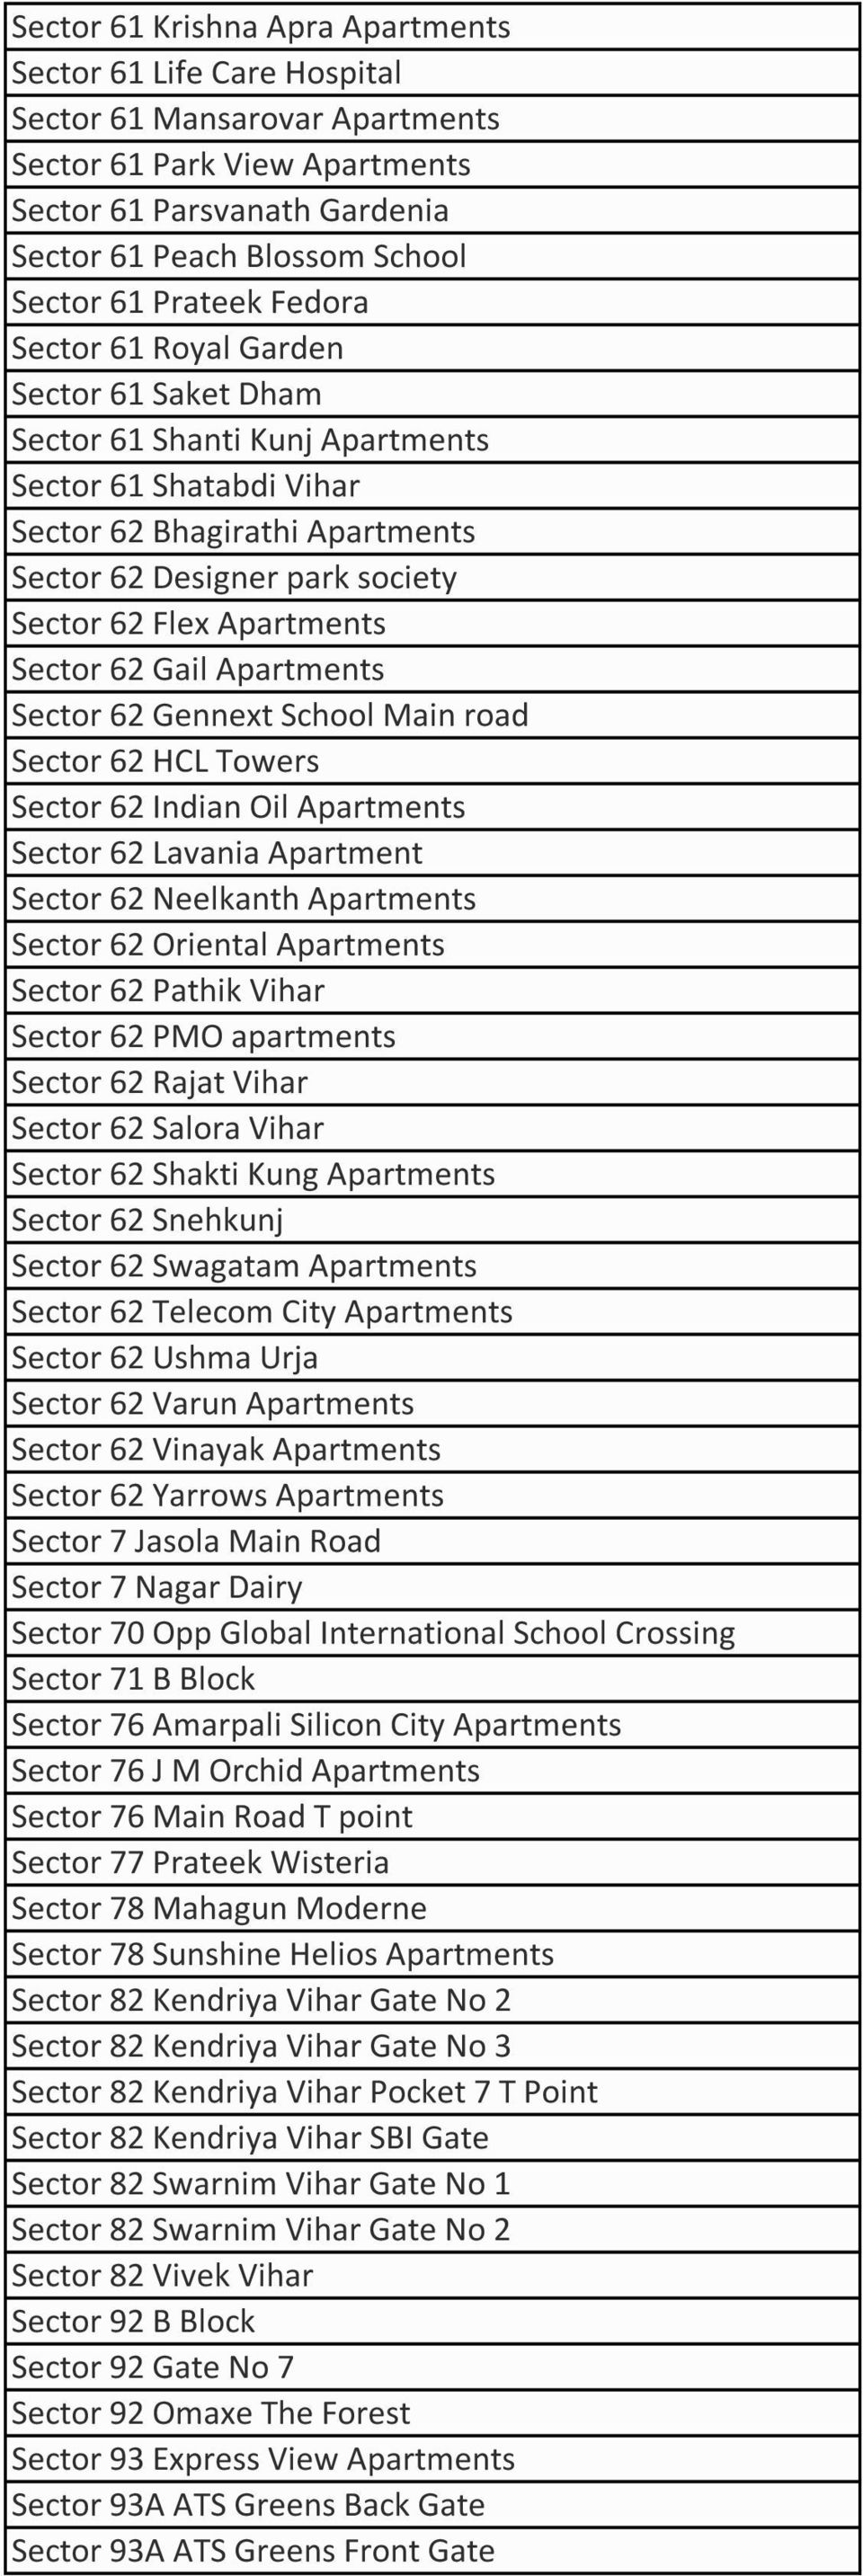 Apartments Sector 62 Gail Apartments Sector 62 Gennext School Main road Sector 62 HCL Towers Sector 62 Indian Oil Apartments Sector 62 Lavania Apartment Sector 62 Neelkanth Apartments Sector 62